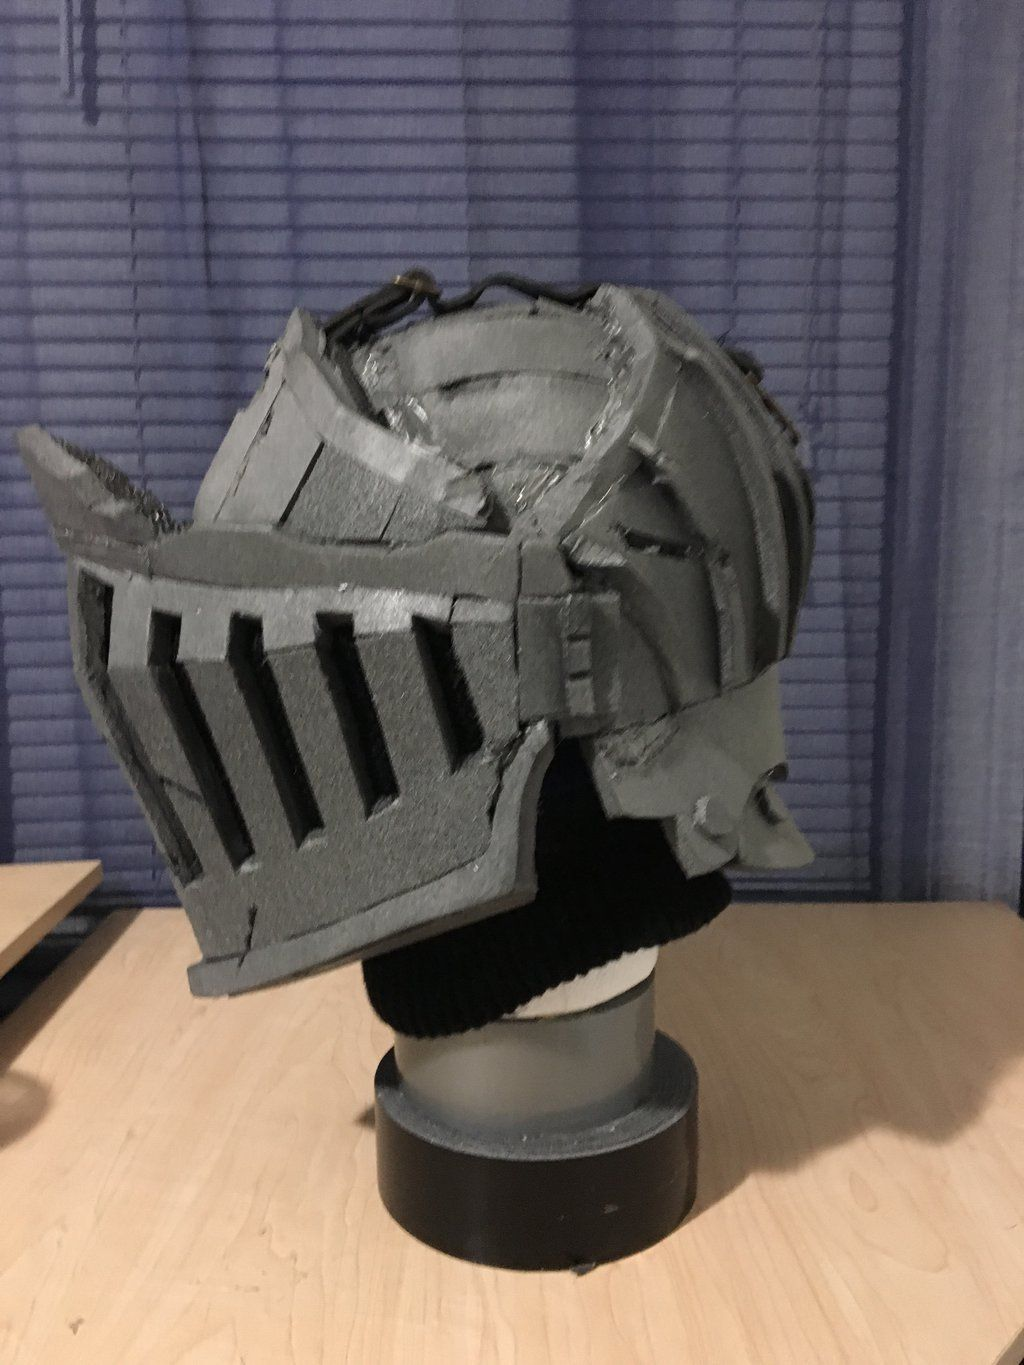 Pin by Gravelord Nito on Chibi Dark Souls 3d modeling